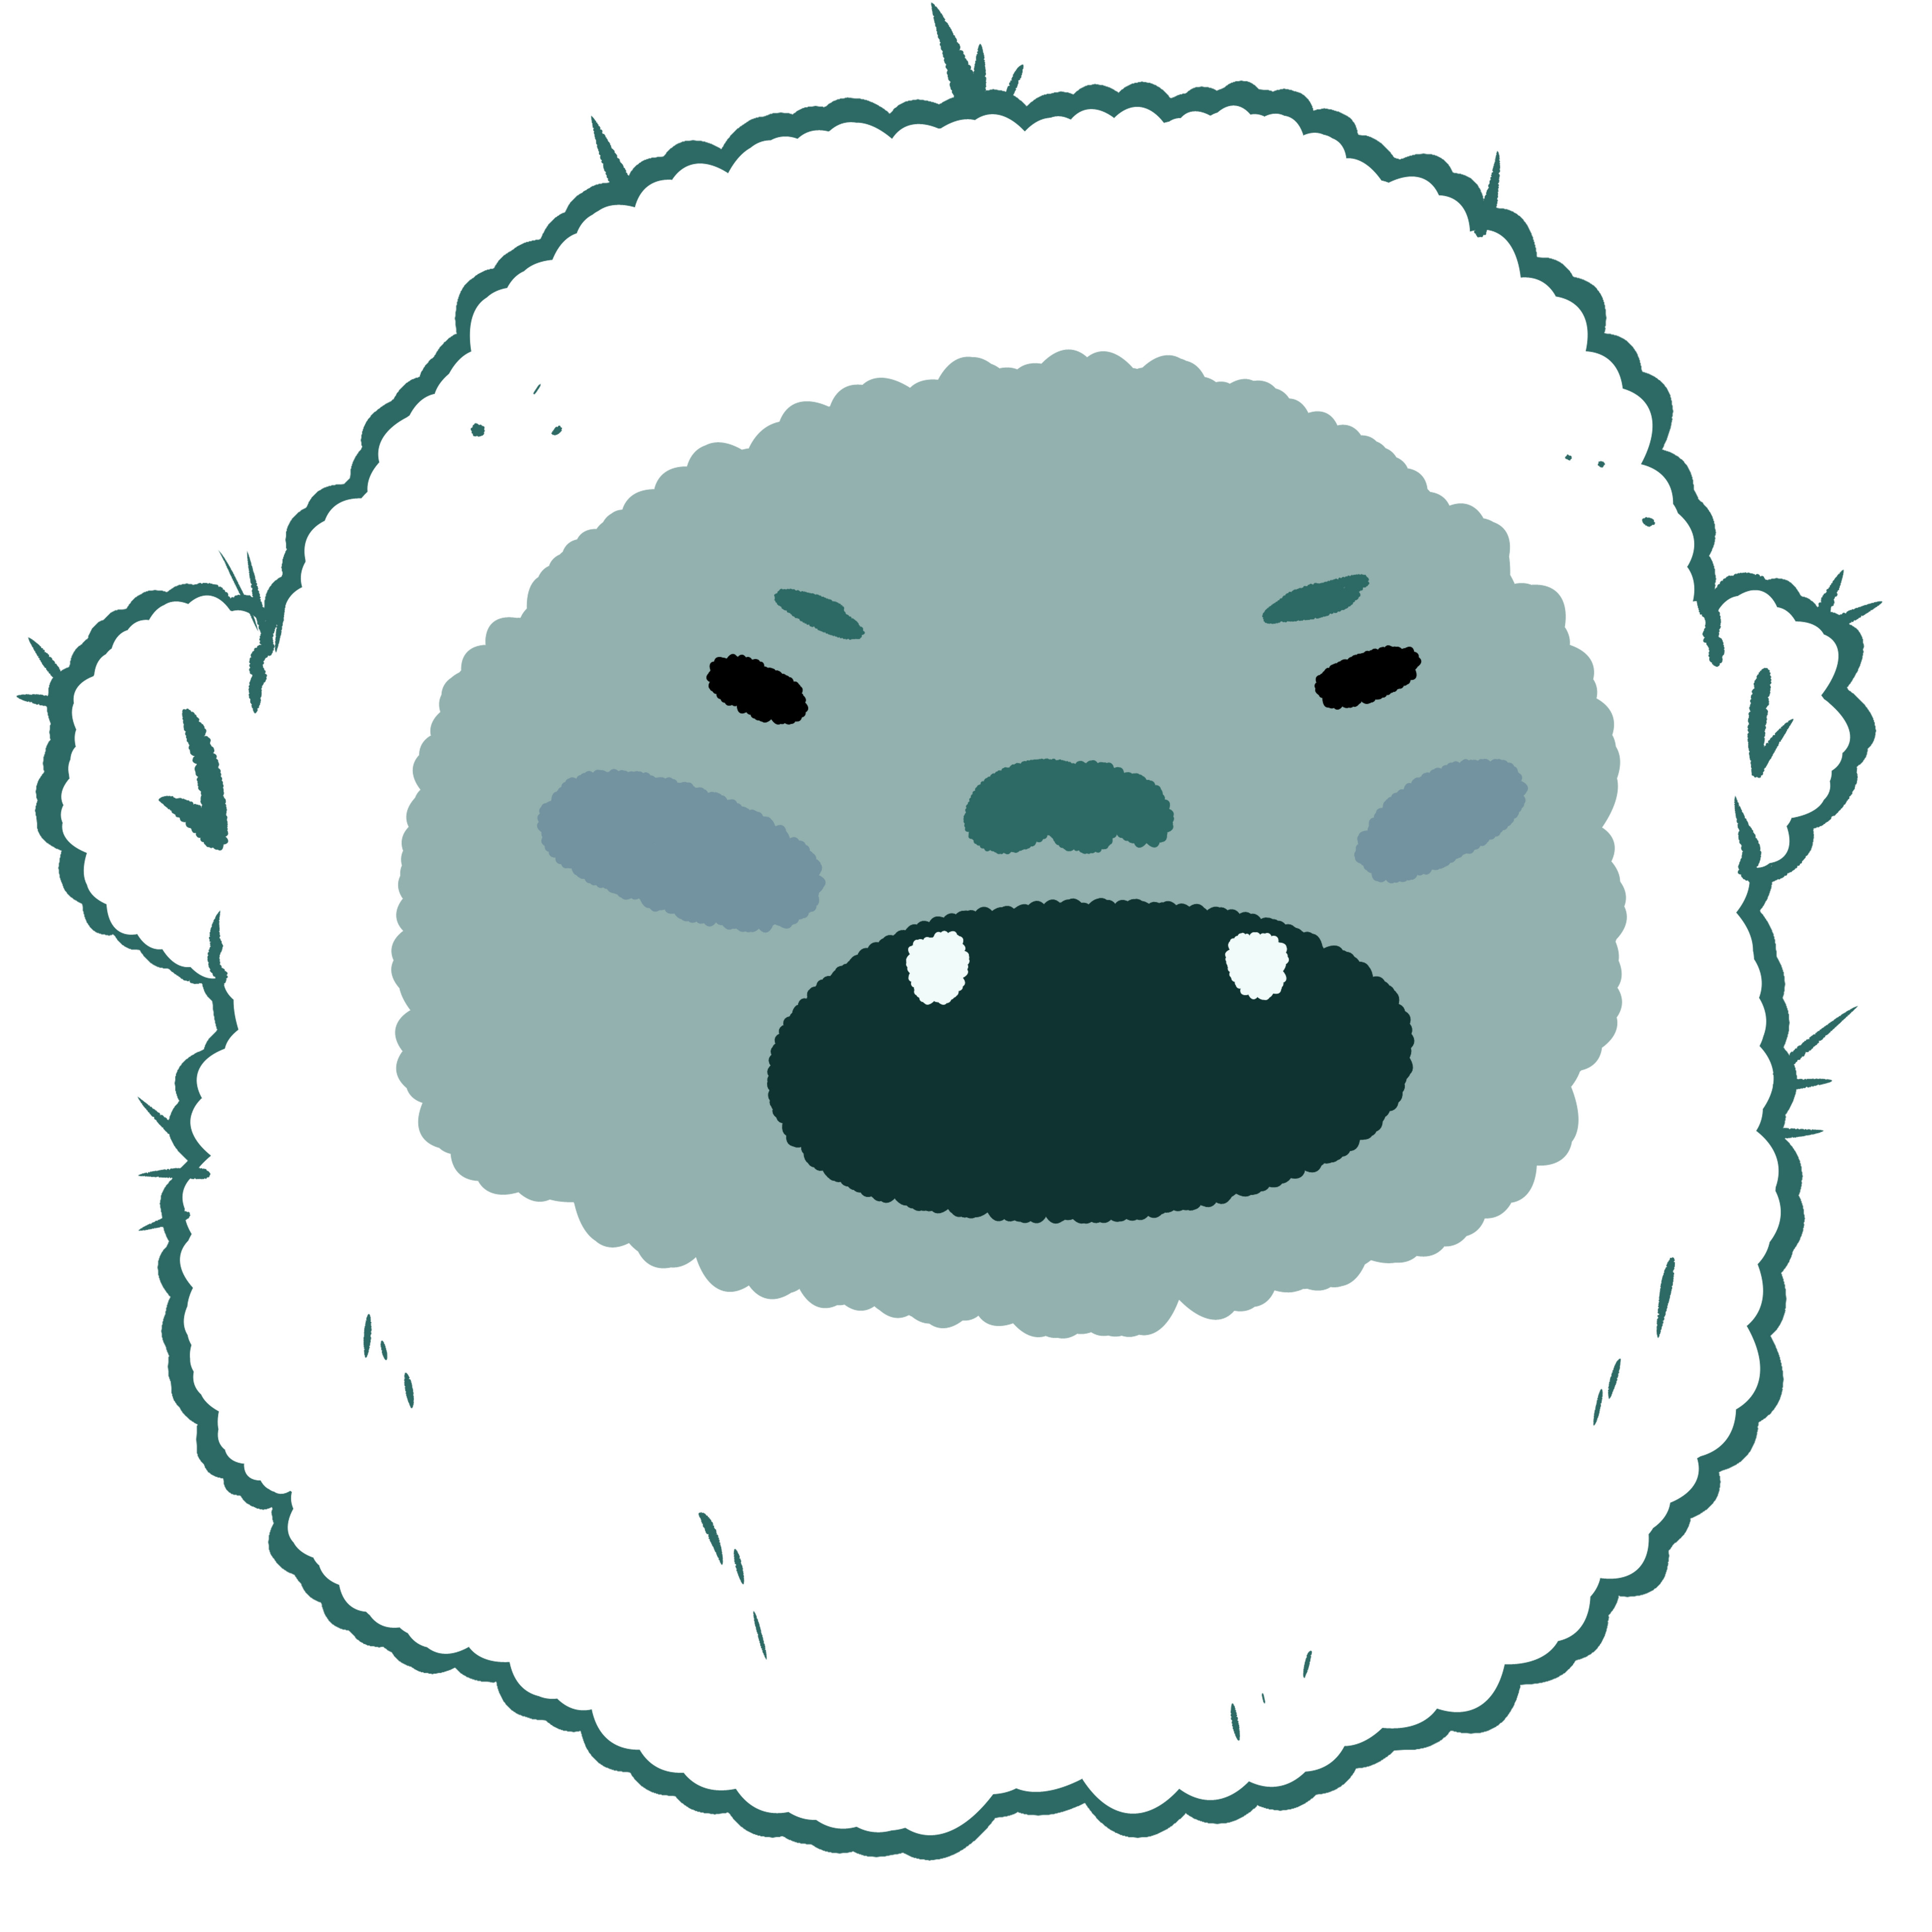 Here's a little yeti I made for my last uni project, it's a little yeti/abominable snowman!